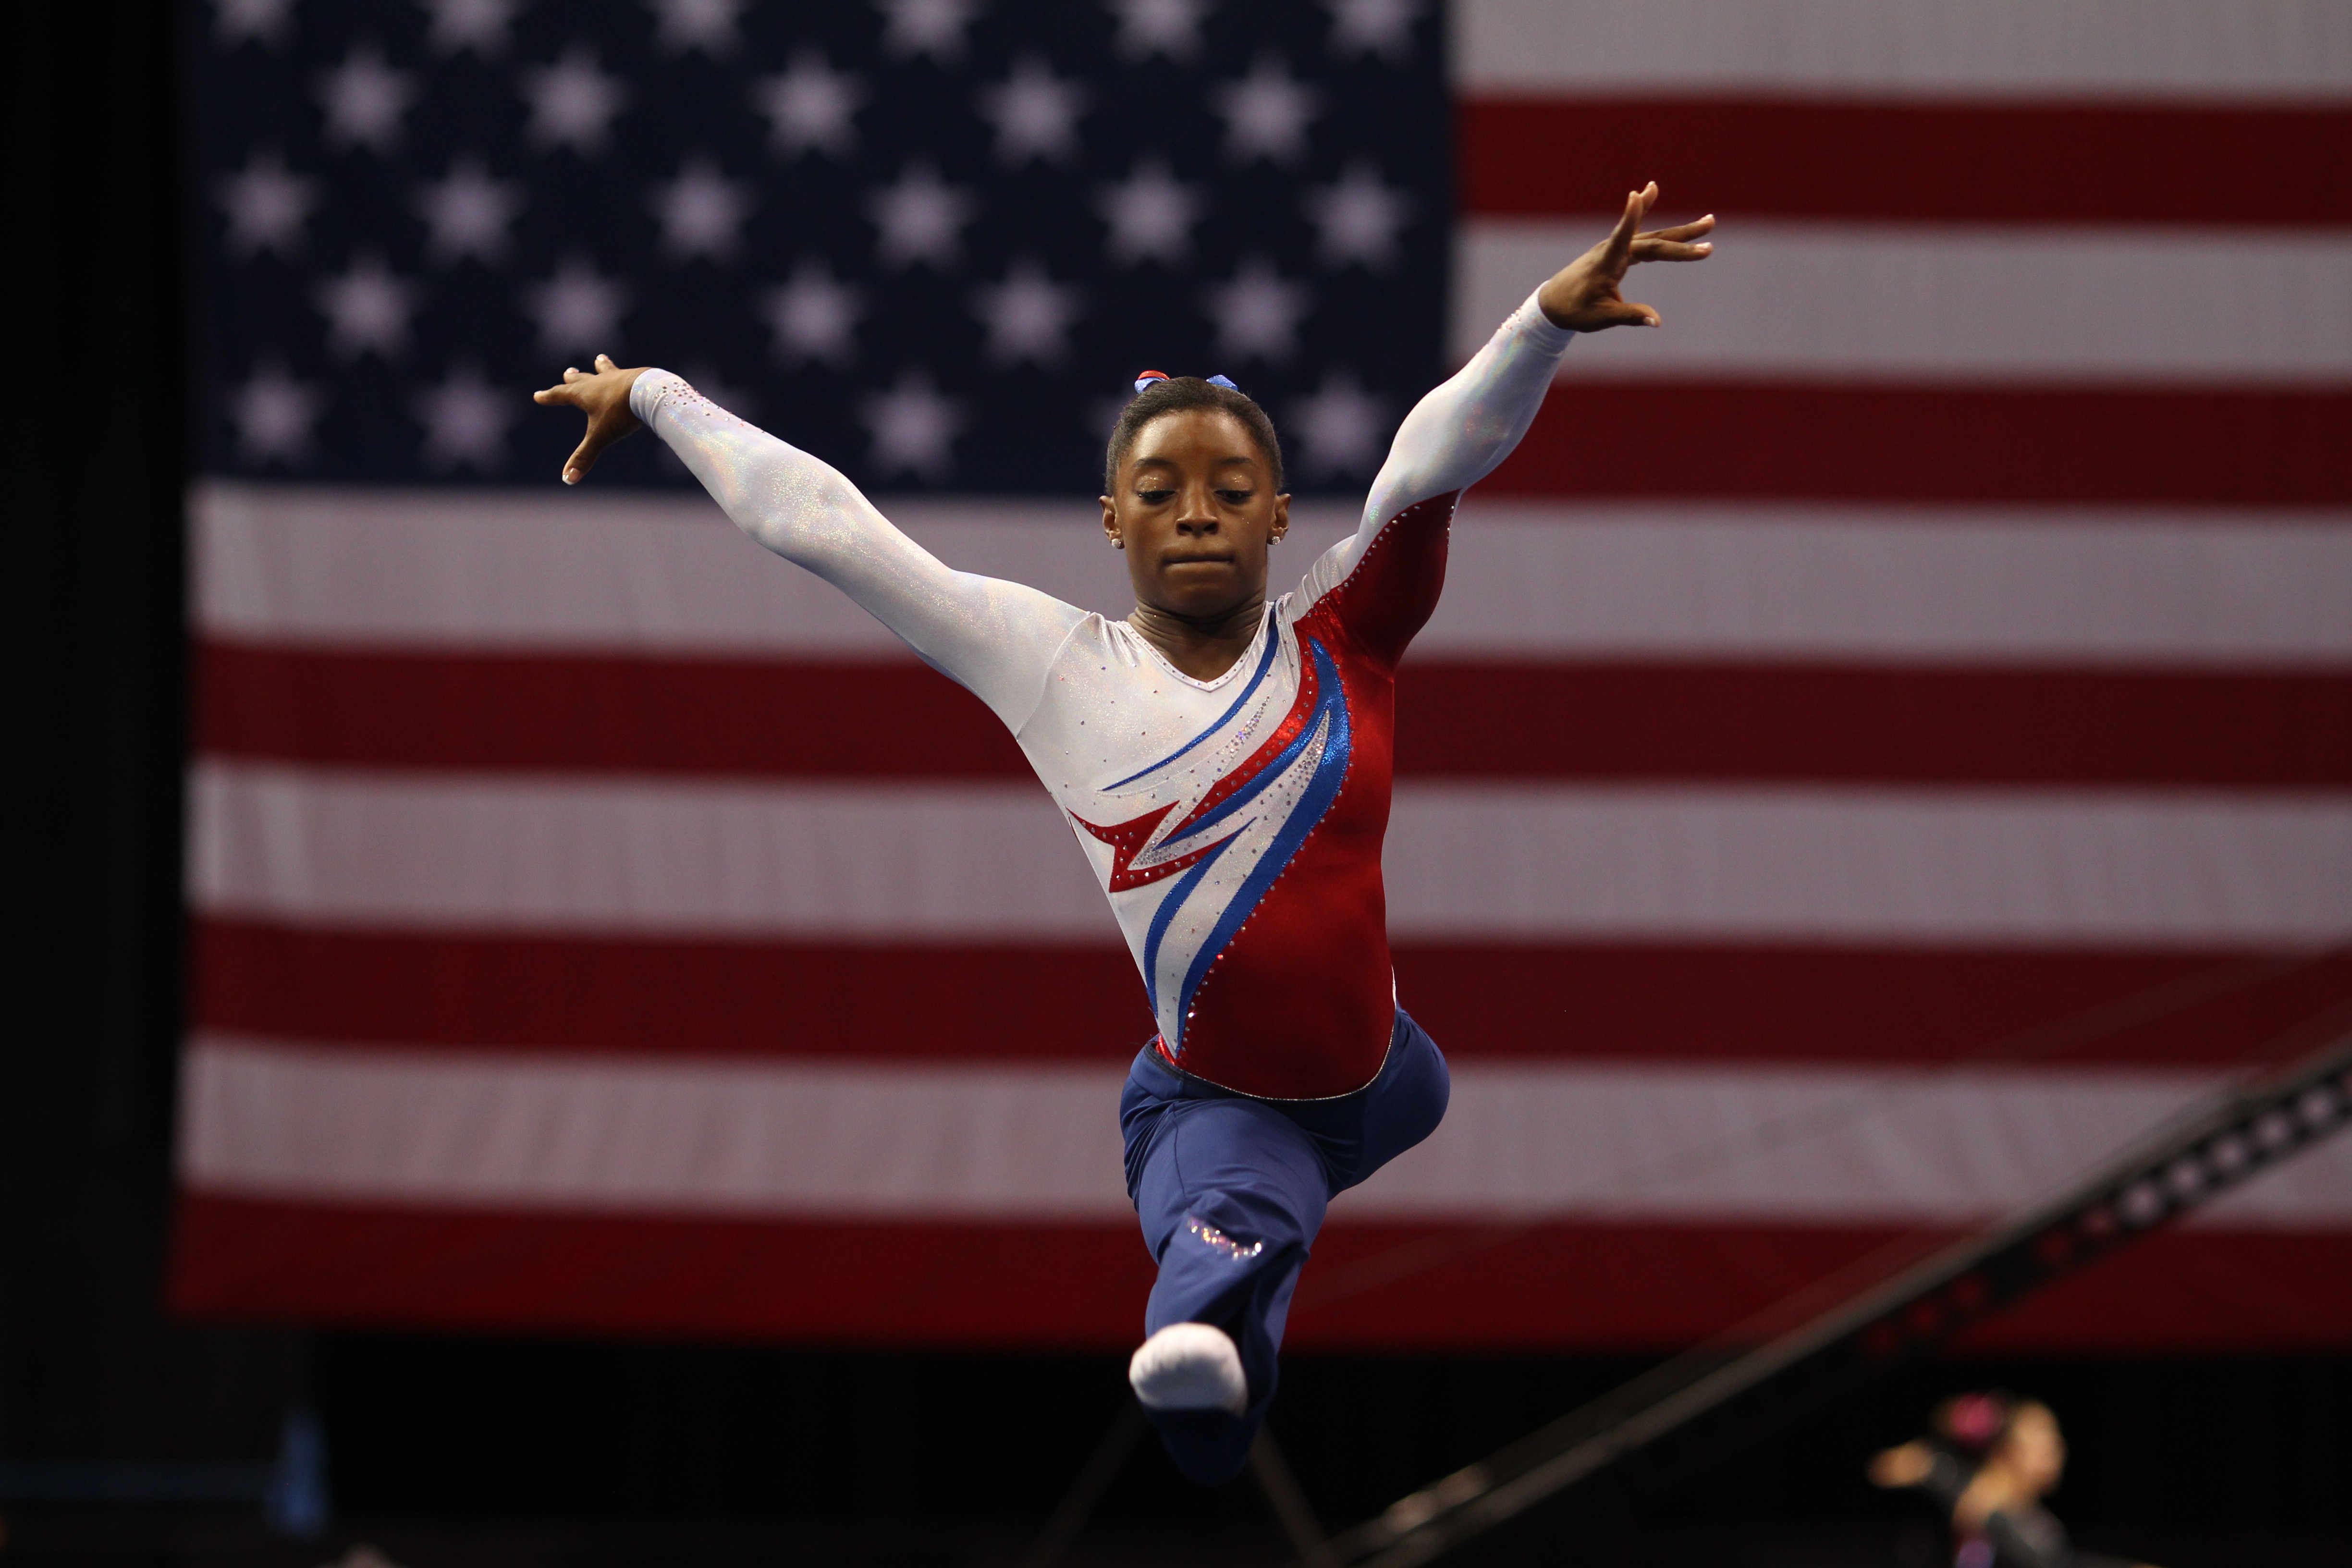 Simone Biles Edges out Kyla Ross for 2013 U.S. National Title ...simone biles